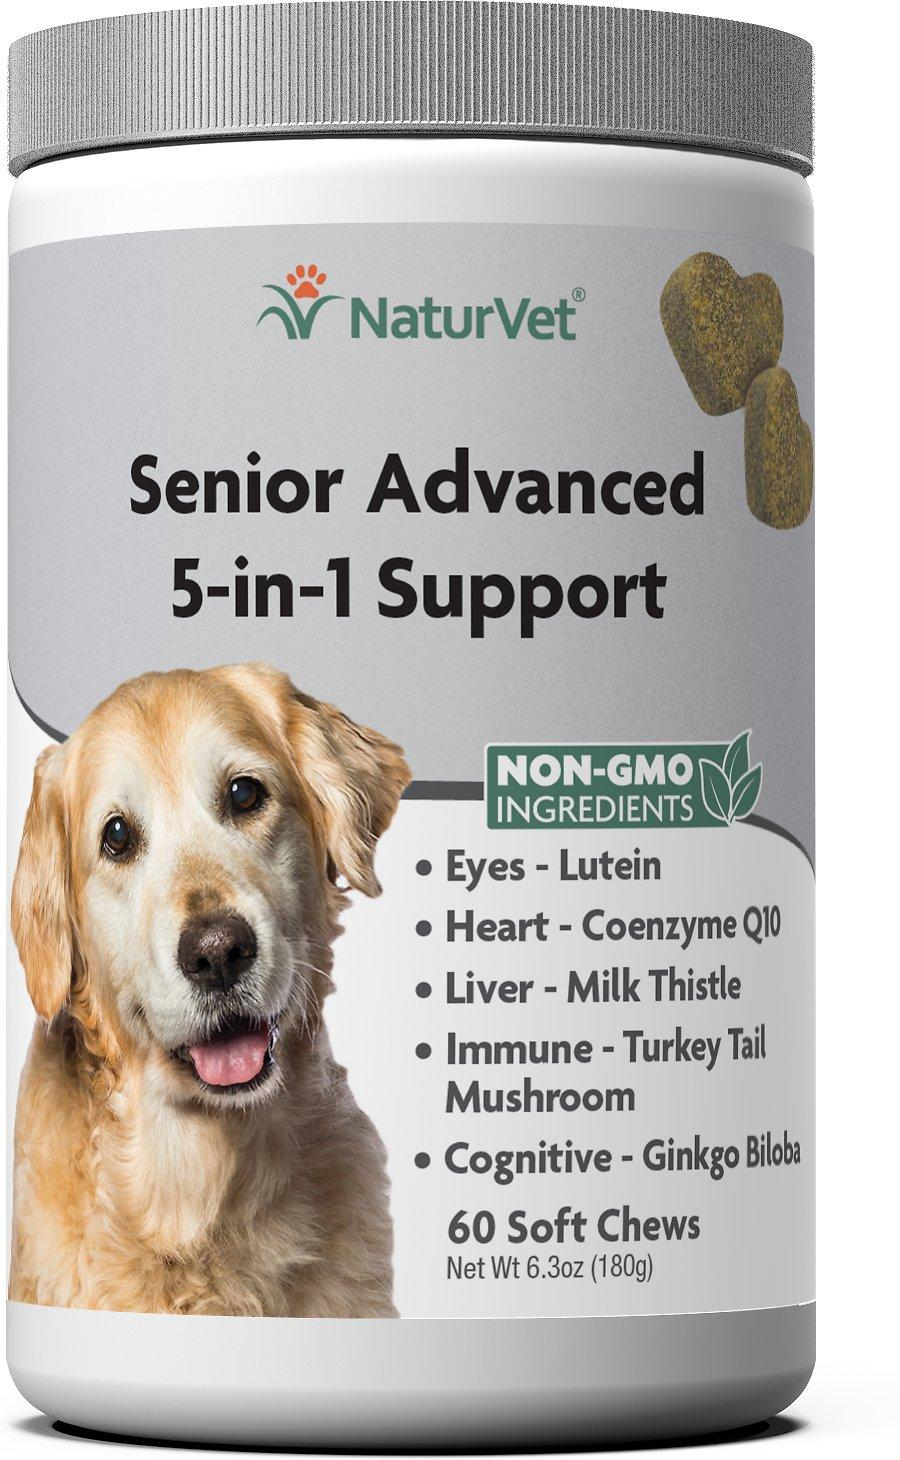 NaturVet Senior Advanced 5-in-1 Support Soft Chews Dog Supplement, 60-count